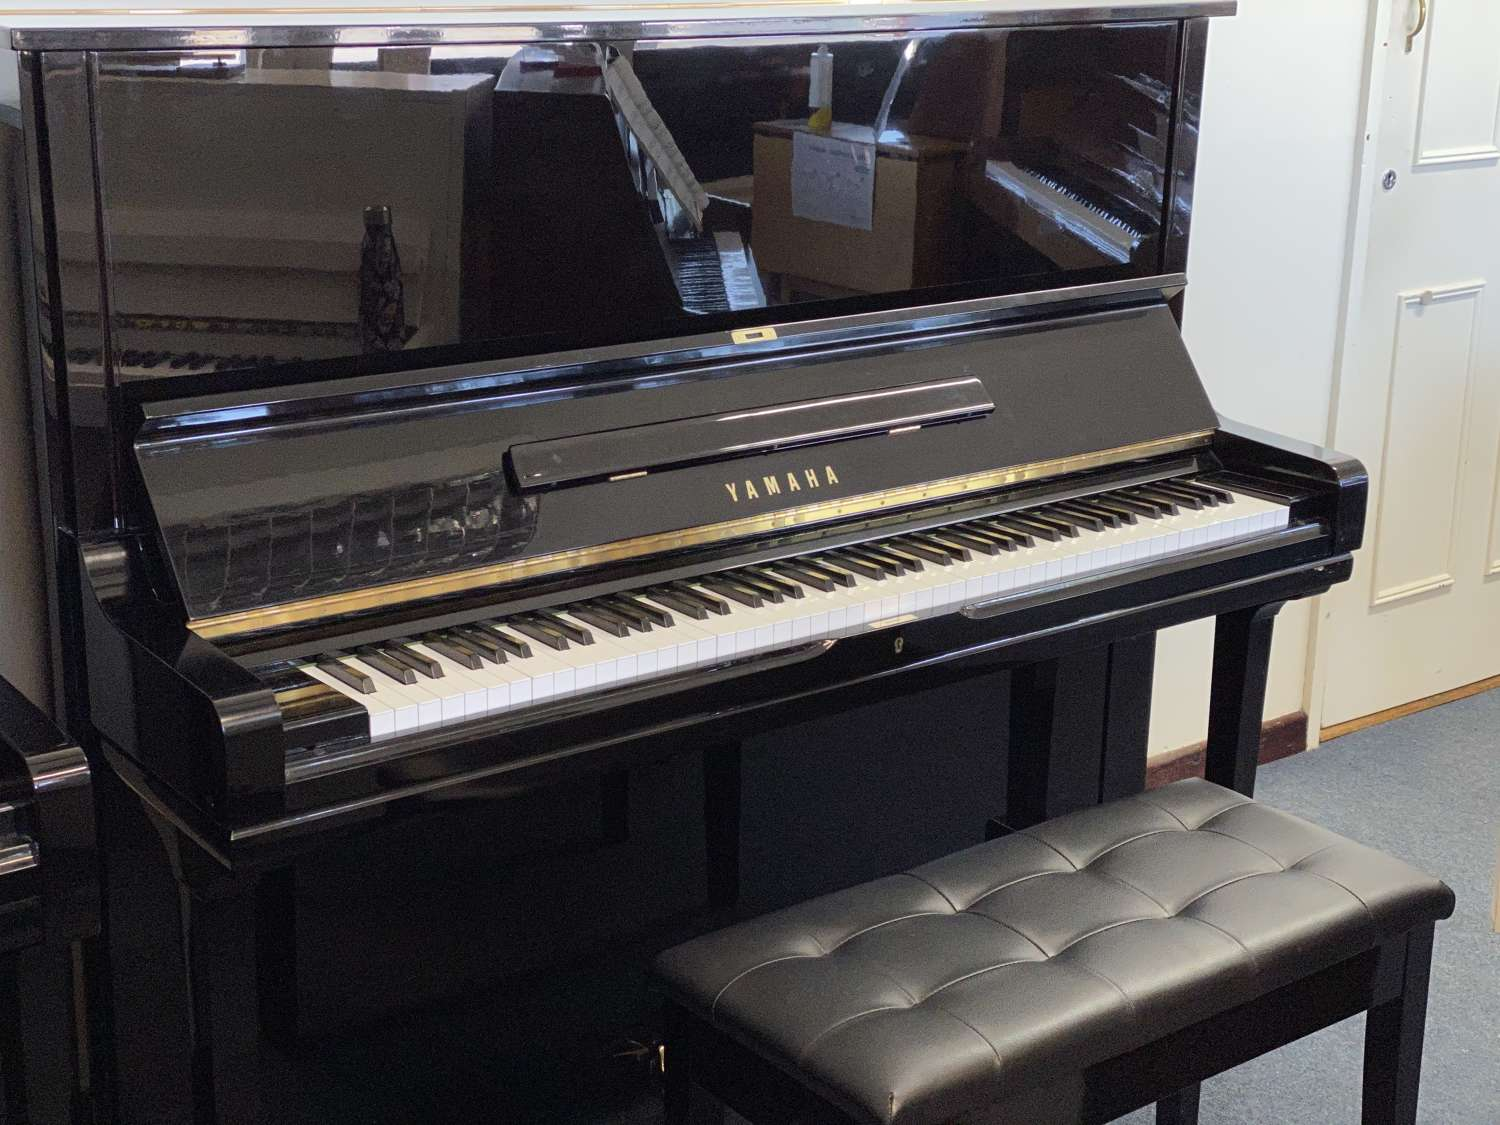 YAMAHA U3 piano for sale